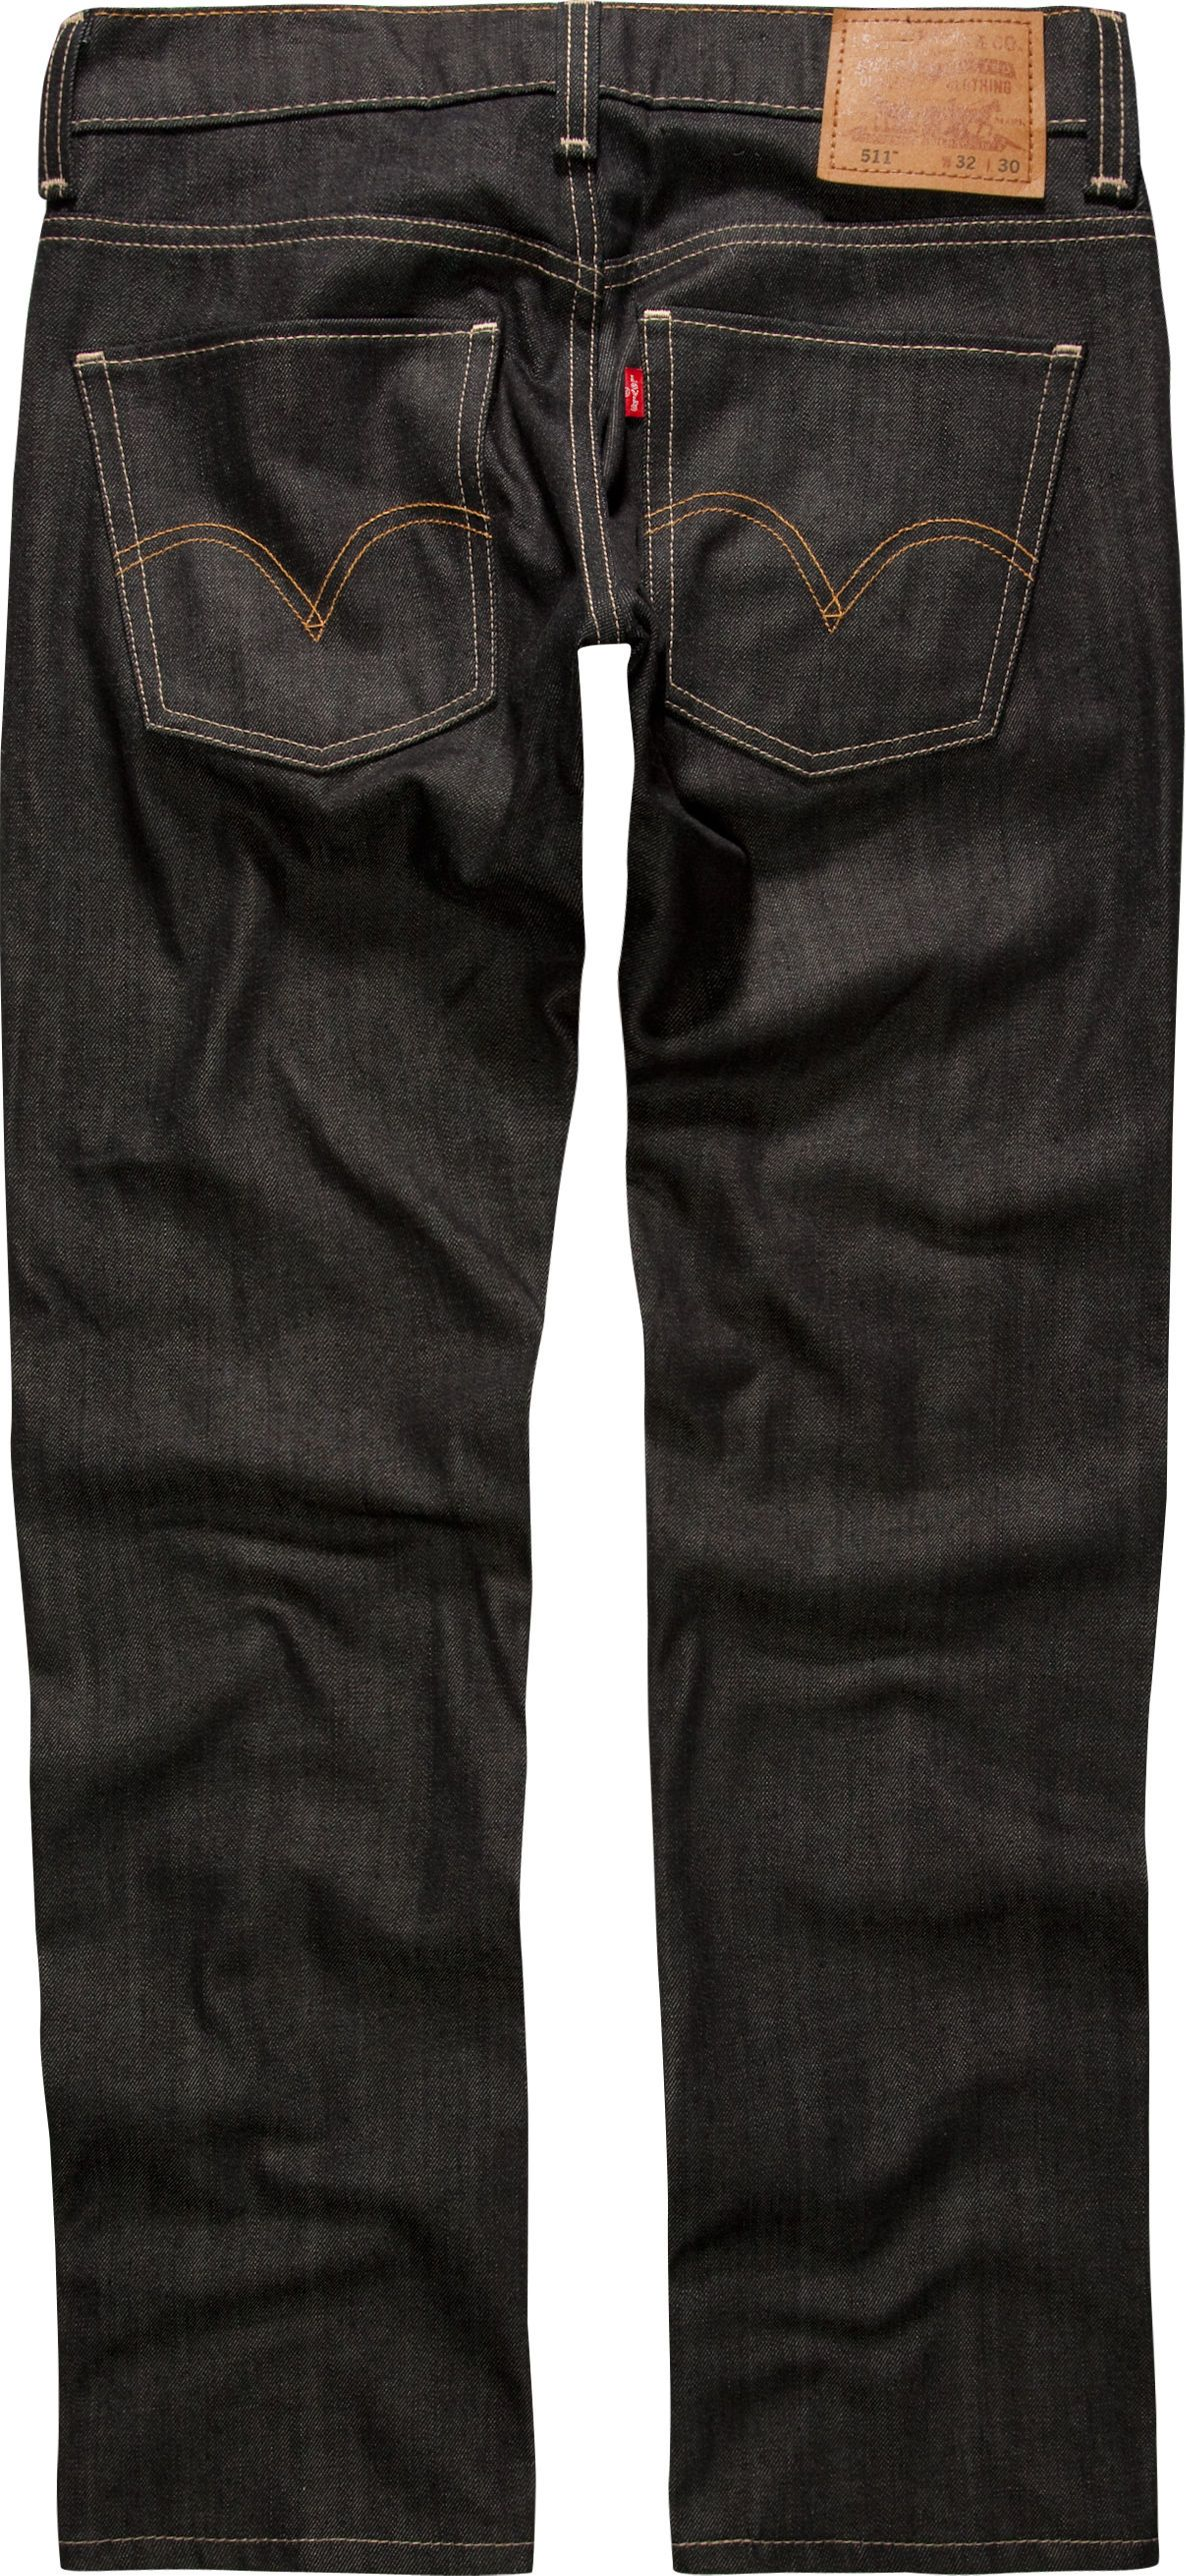 fc0a4cc7088 Levi's mens jeans | Lance clothes | Ripped jeans men, Jeans, Mens ...